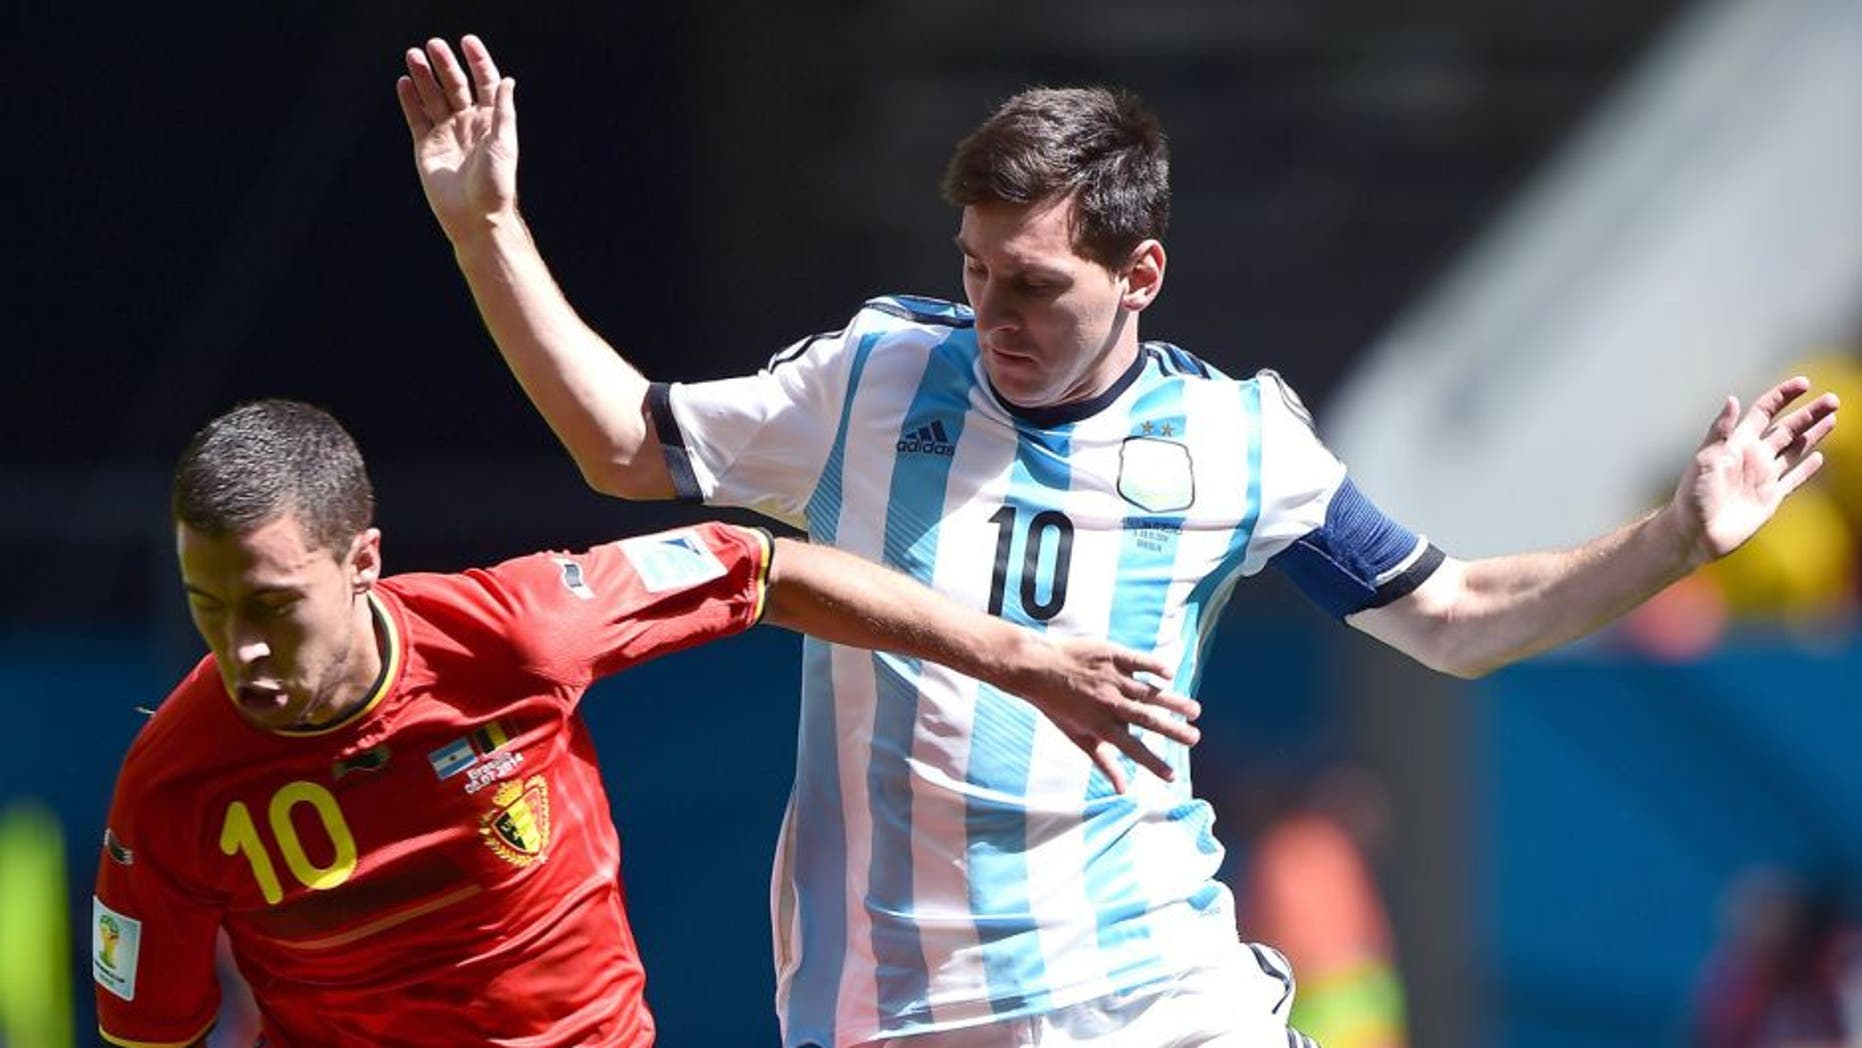 Belgium's midfielder Eden Hazard (L) vies with Argentina's forward Lionel Messi during the second half of a quarter-final football match between Argentina and Belgium at the Mane Garrincha National Stadium in Brasilia during the 2014 FIFA World Cup on July 5, 2014. AFP PHOTO / FRANCOIS XAVIER MARIT (Photo credit should read FRANCOIS XAVIER MARIT/AFP/Getty Images)